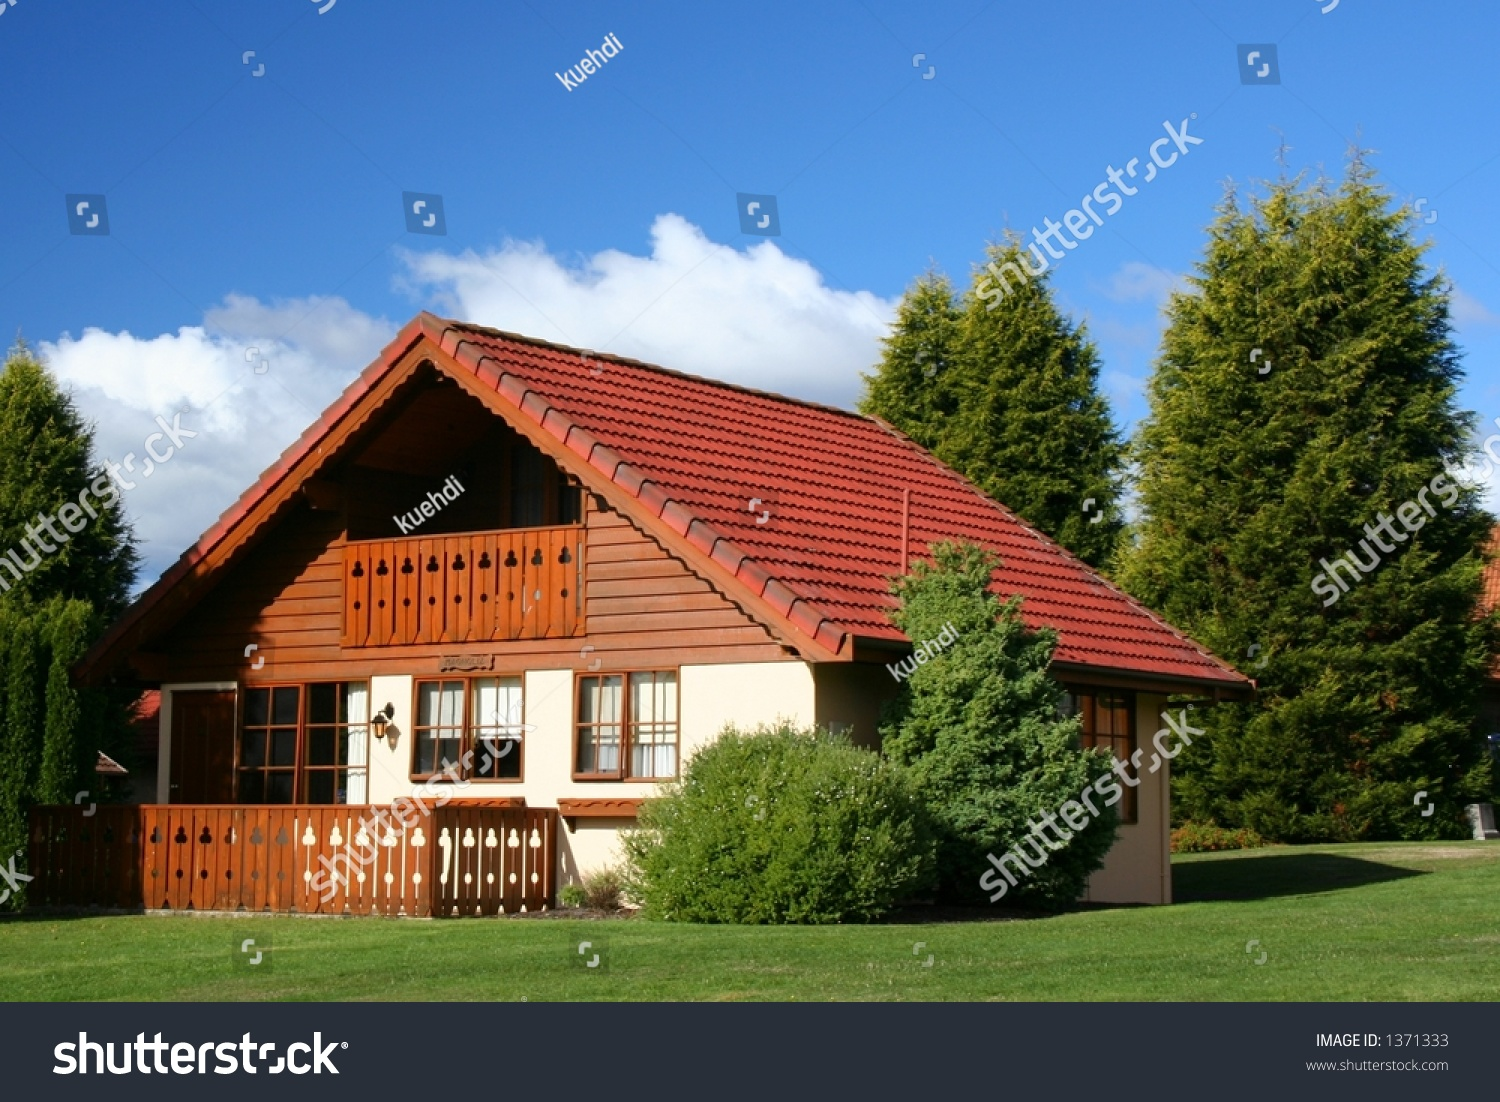 Swiss Style House Home Design And Style - Swiss home design